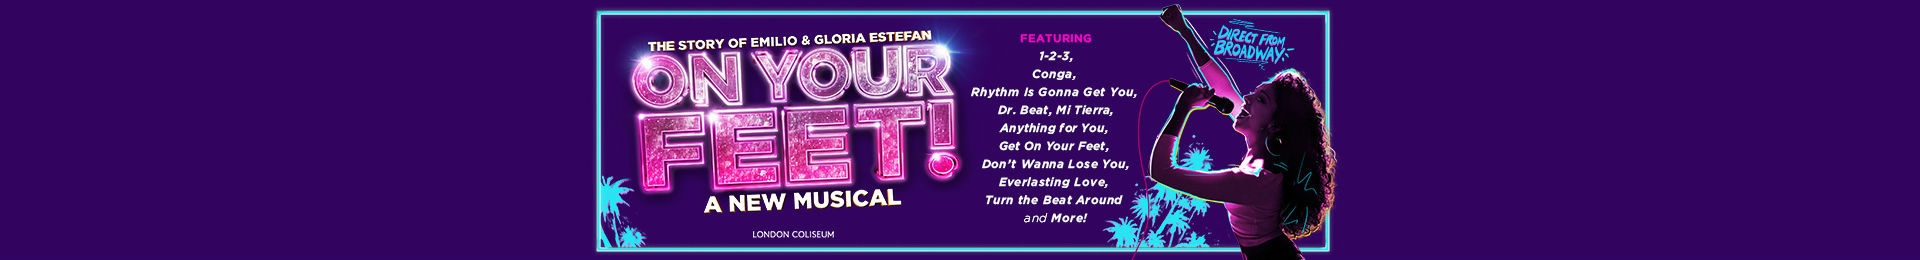 On Your Feet! The Story of Emilio and Gloria Estefan tickets